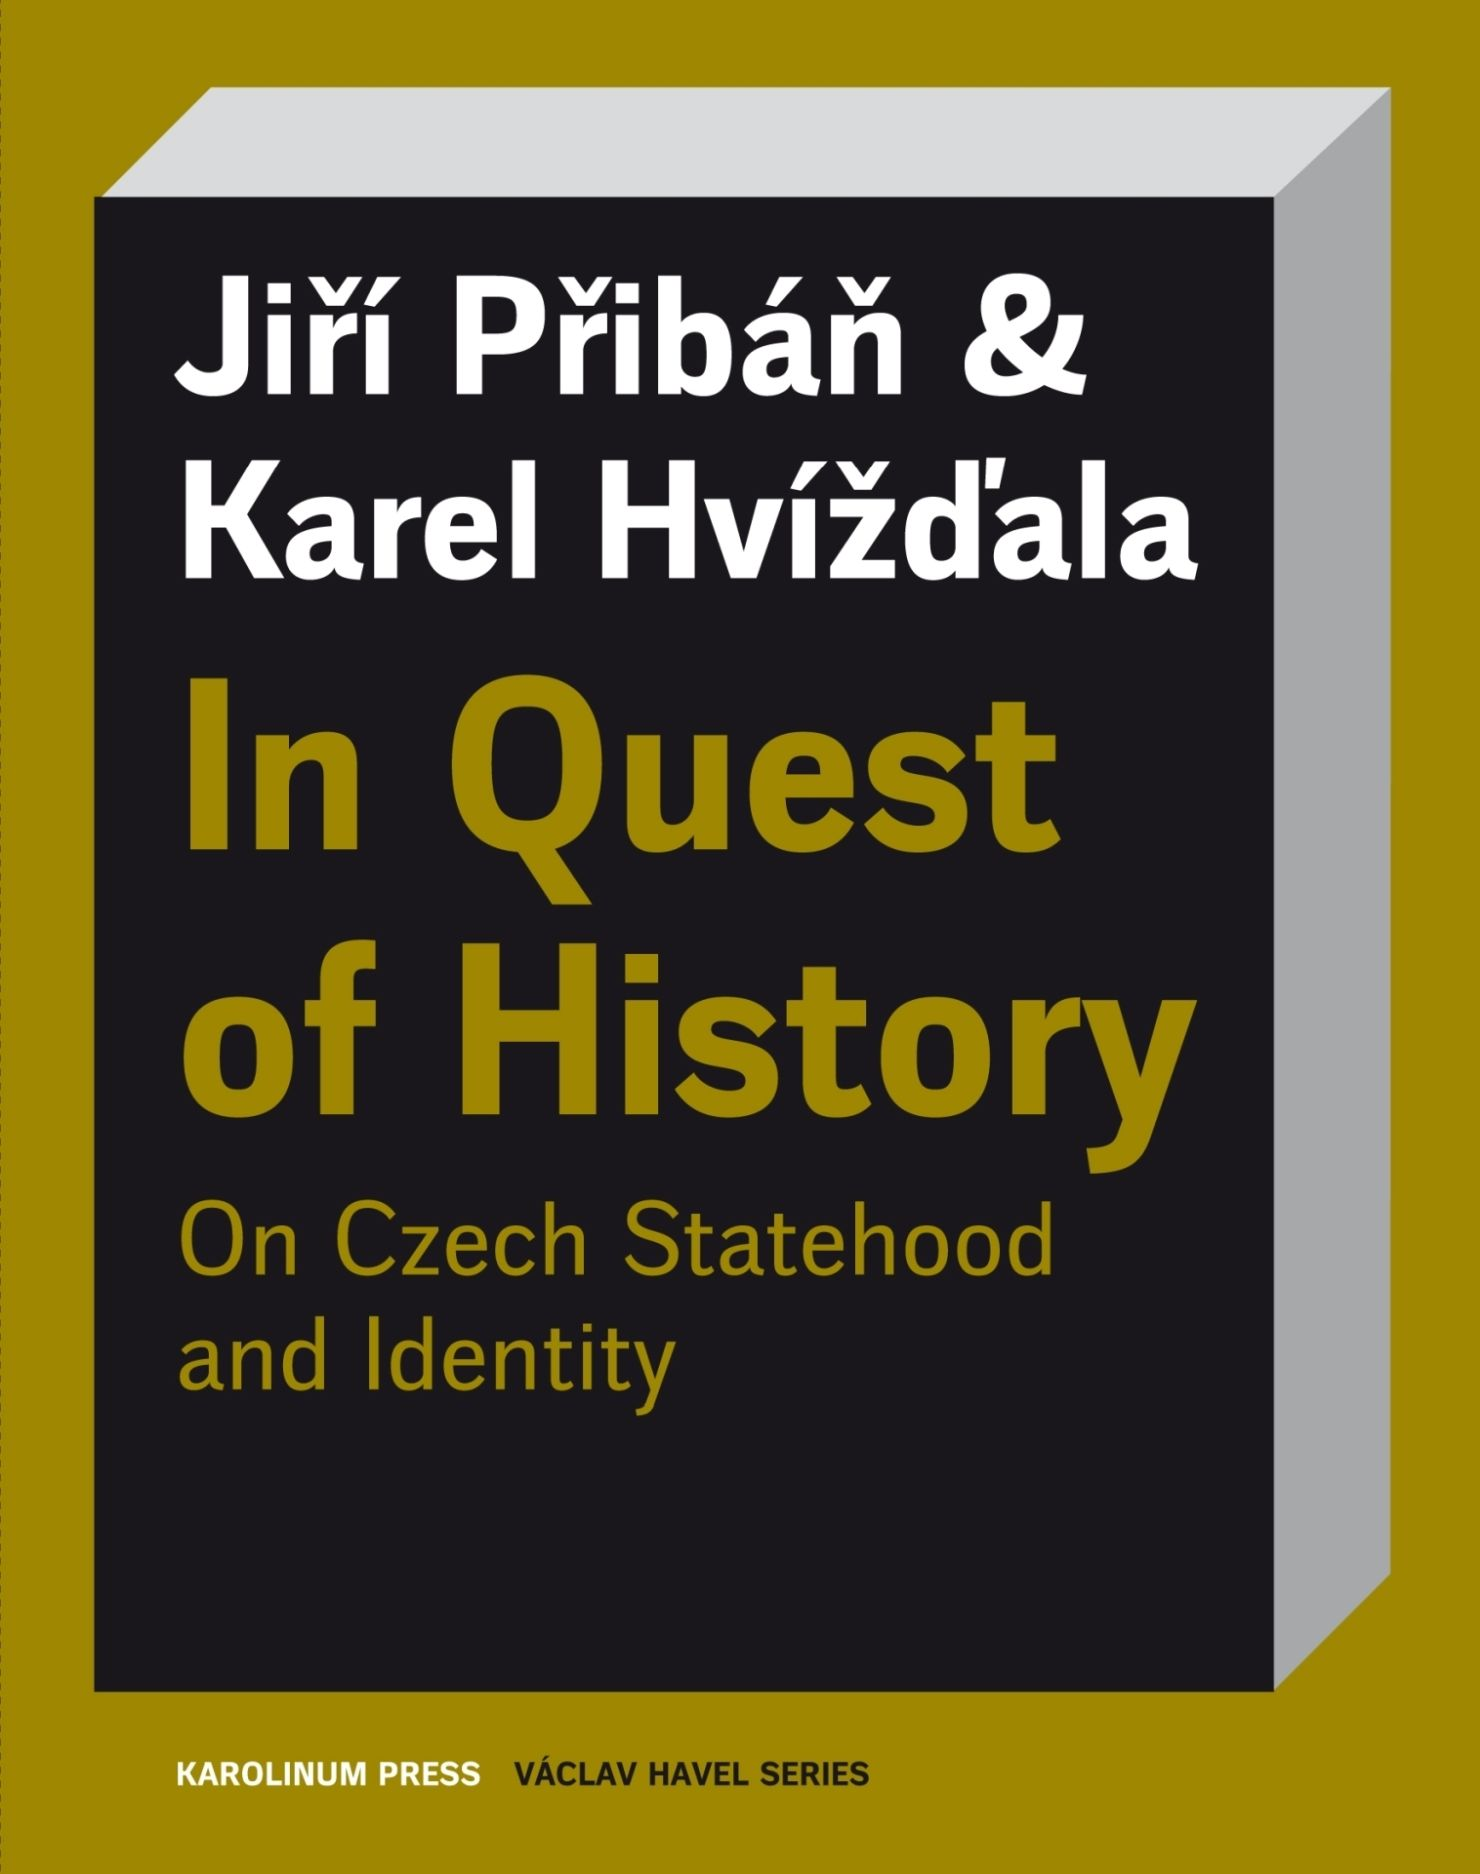 In Quest of History: On Czech Statehood and Identity